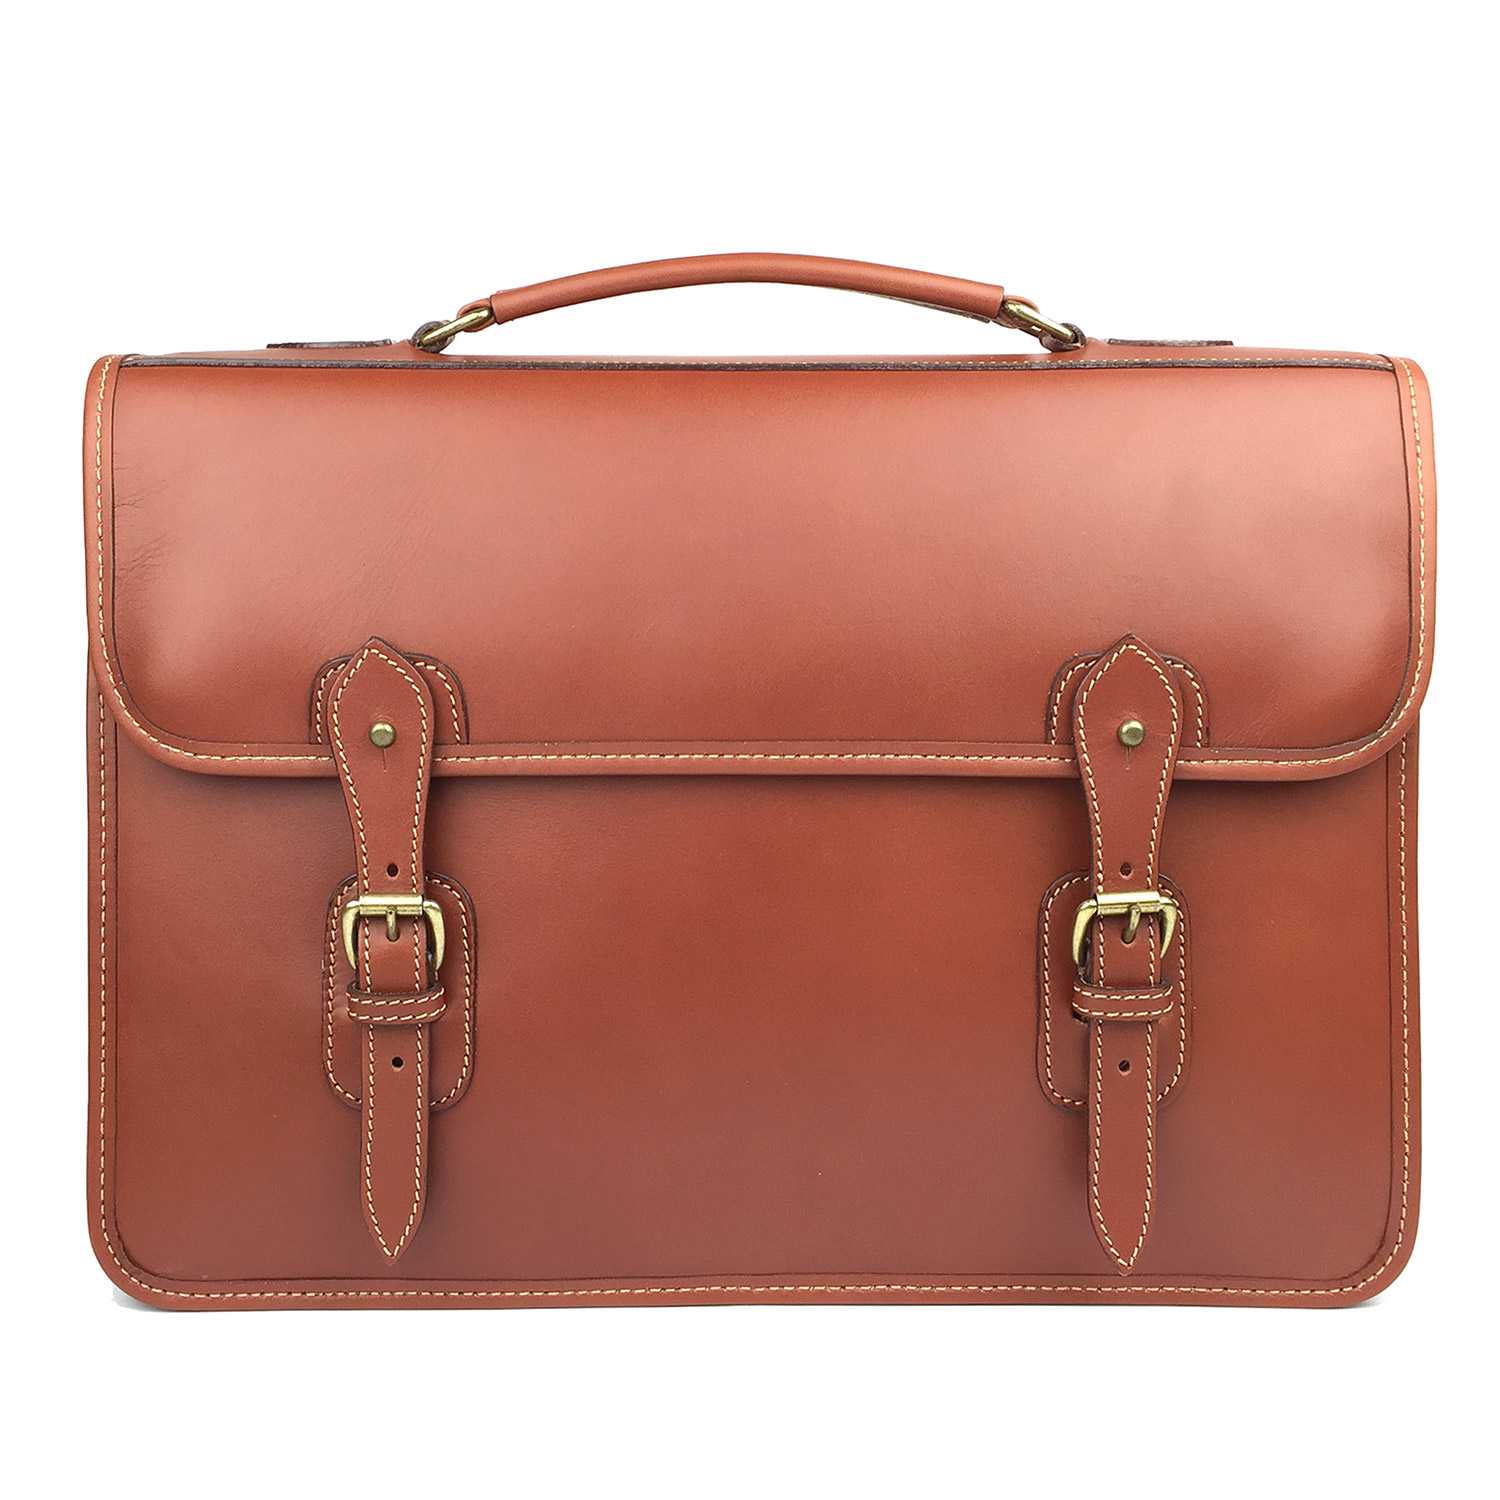 Tusting Leather Satchel Briefcase in London Tan